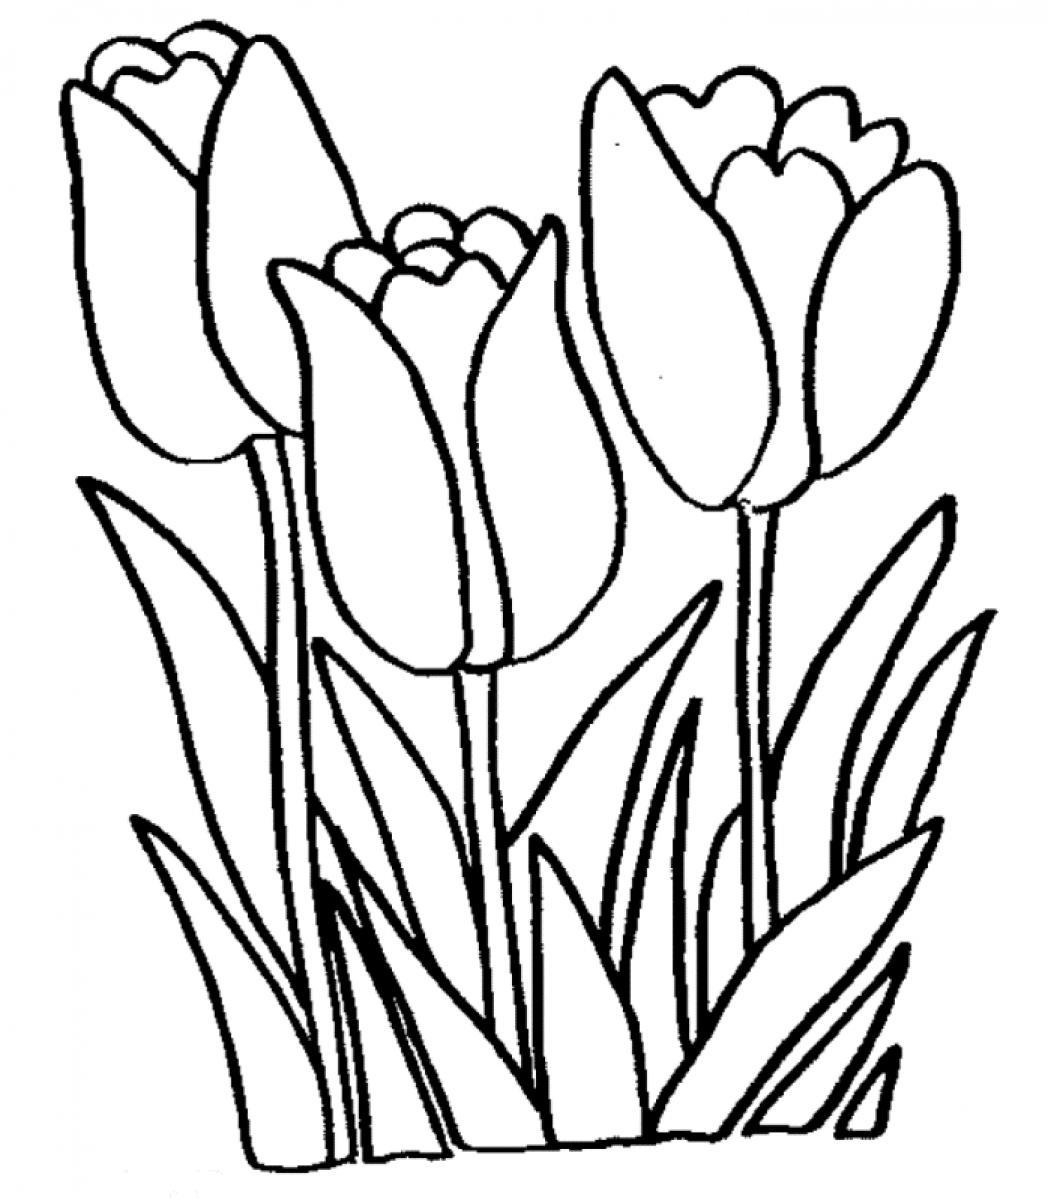 Tulip Clipart Black And White Hd | Letters in Tulip Clipart ... graphic transparent library